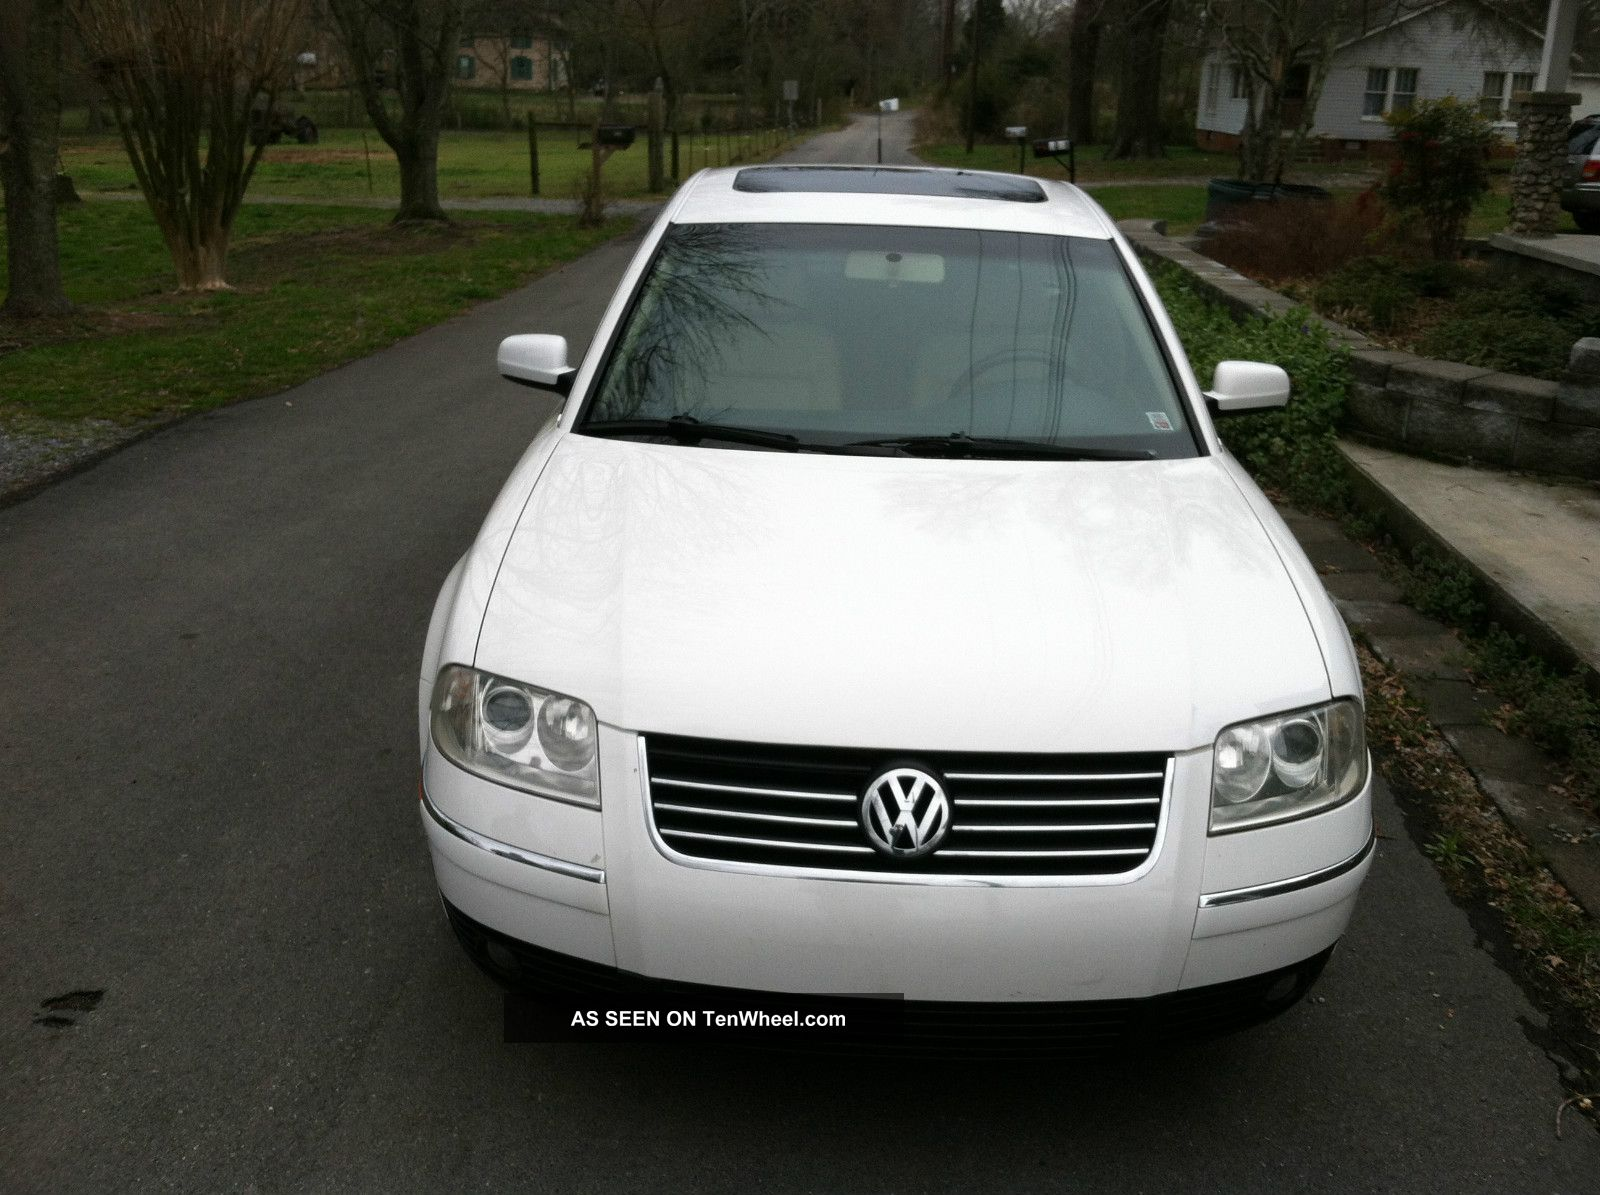 2002 volkswagen passat gls turbo 4 dr sedan. Black Bedroom Furniture Sets. Home Design Ideas